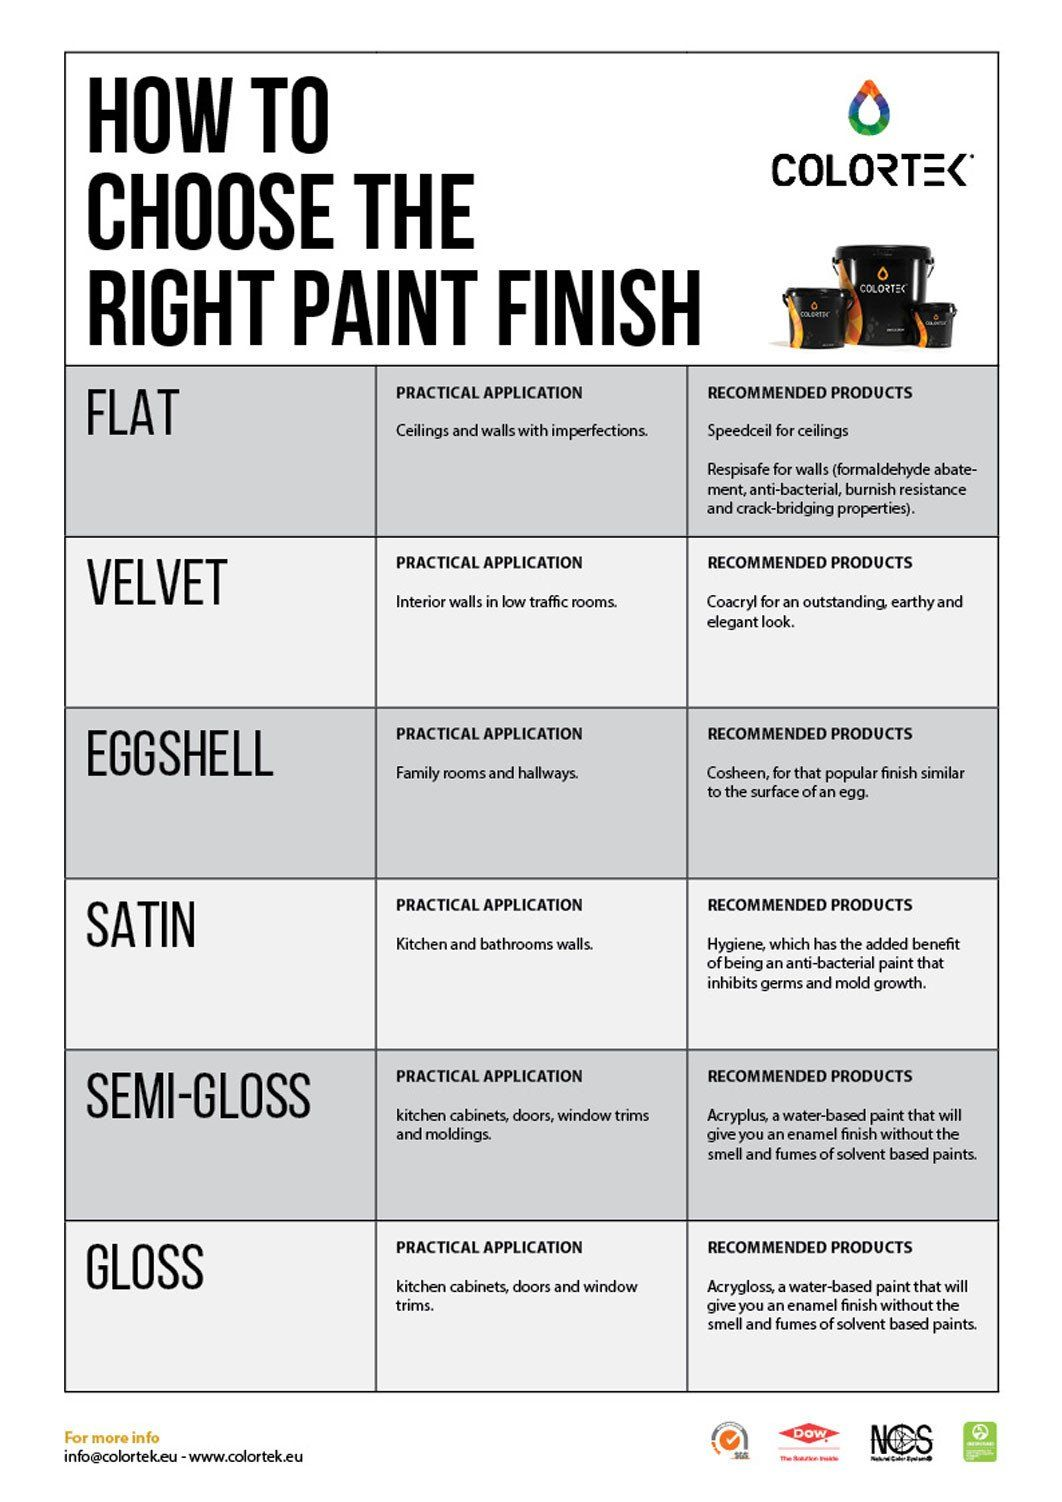 Paint Finishes For Kitchen Wall Unique Choosing A Paint Finish And The Right Sheen A Colortek In 2020 Paint Finishes Cool Paintings Kitchen Cabinets Painted Grey